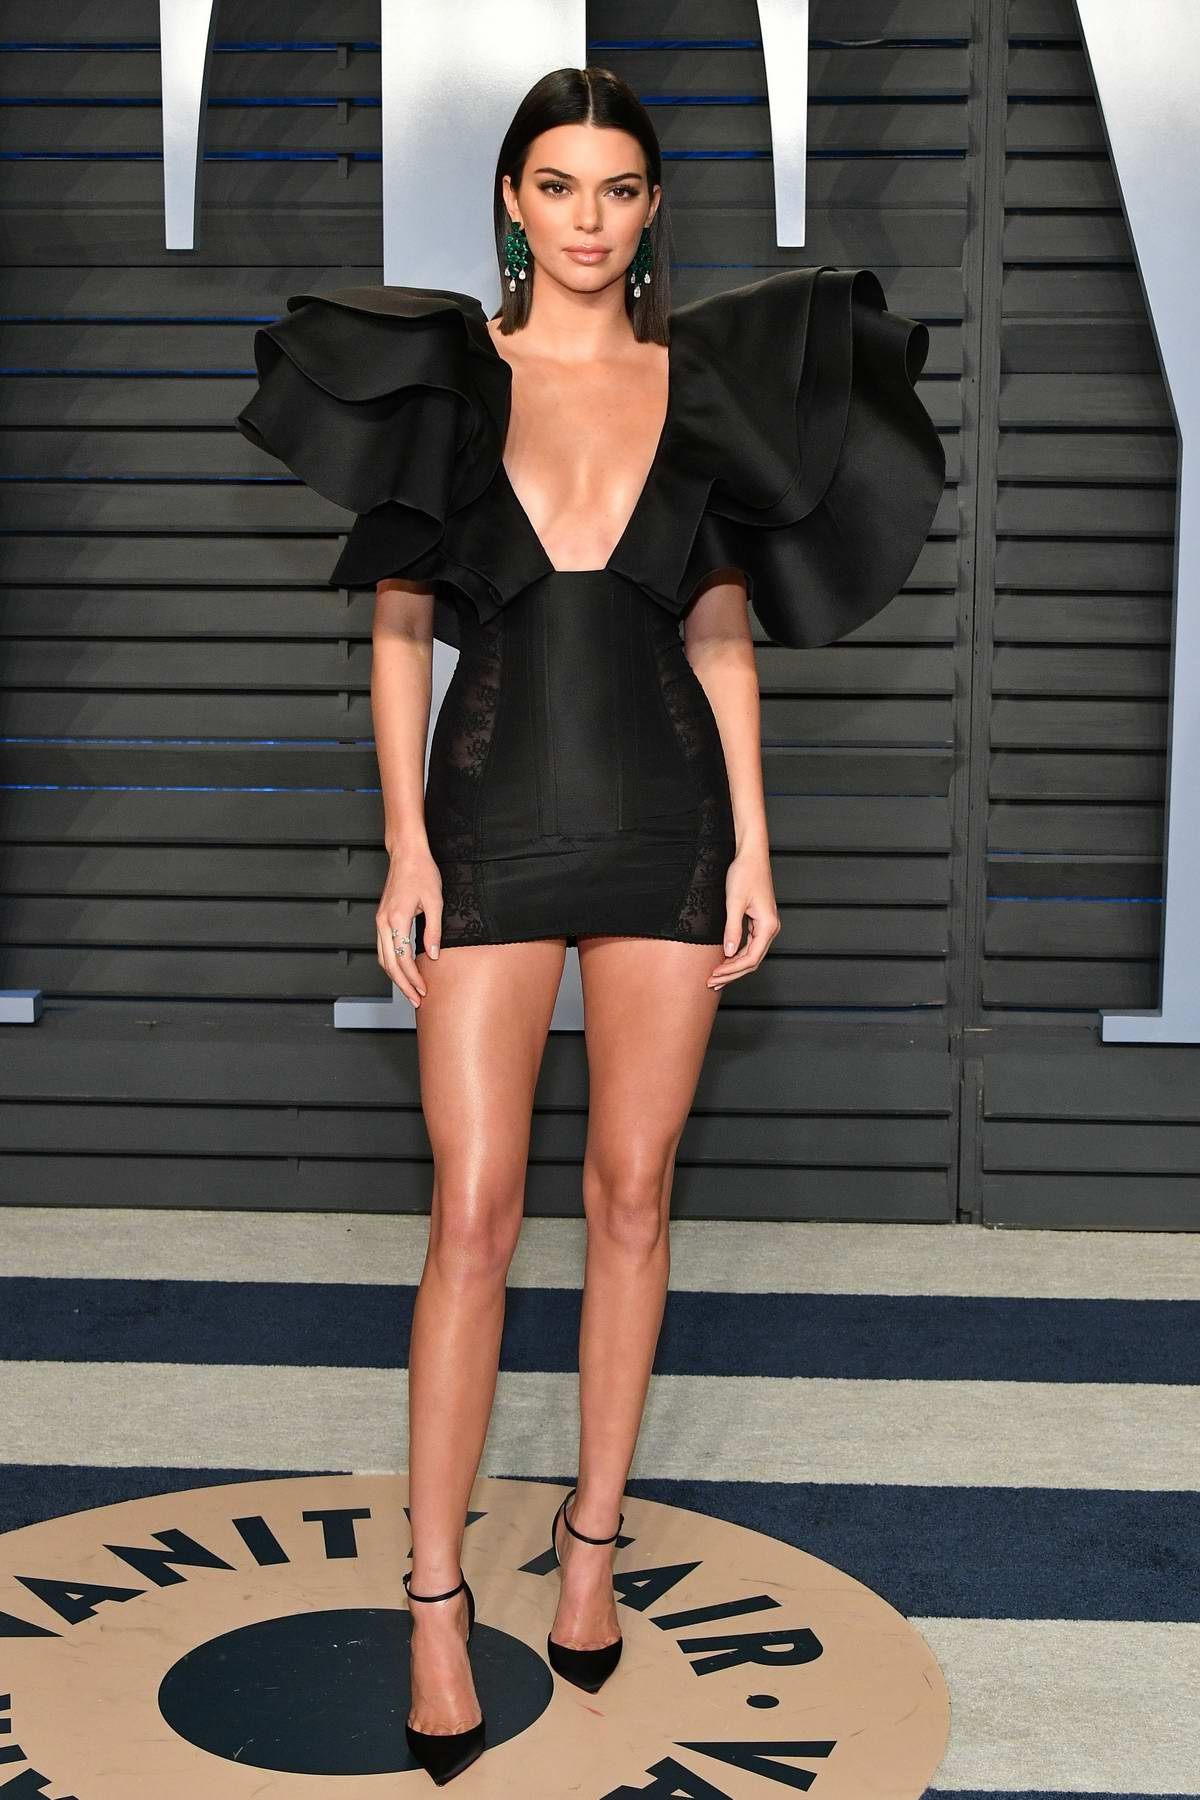 Kendall Jenner attends 2018 Vanity Fair Oscar Party at the Wallis Annenberg Center for the Performing Arts in Beverly Hills, Los Angeles